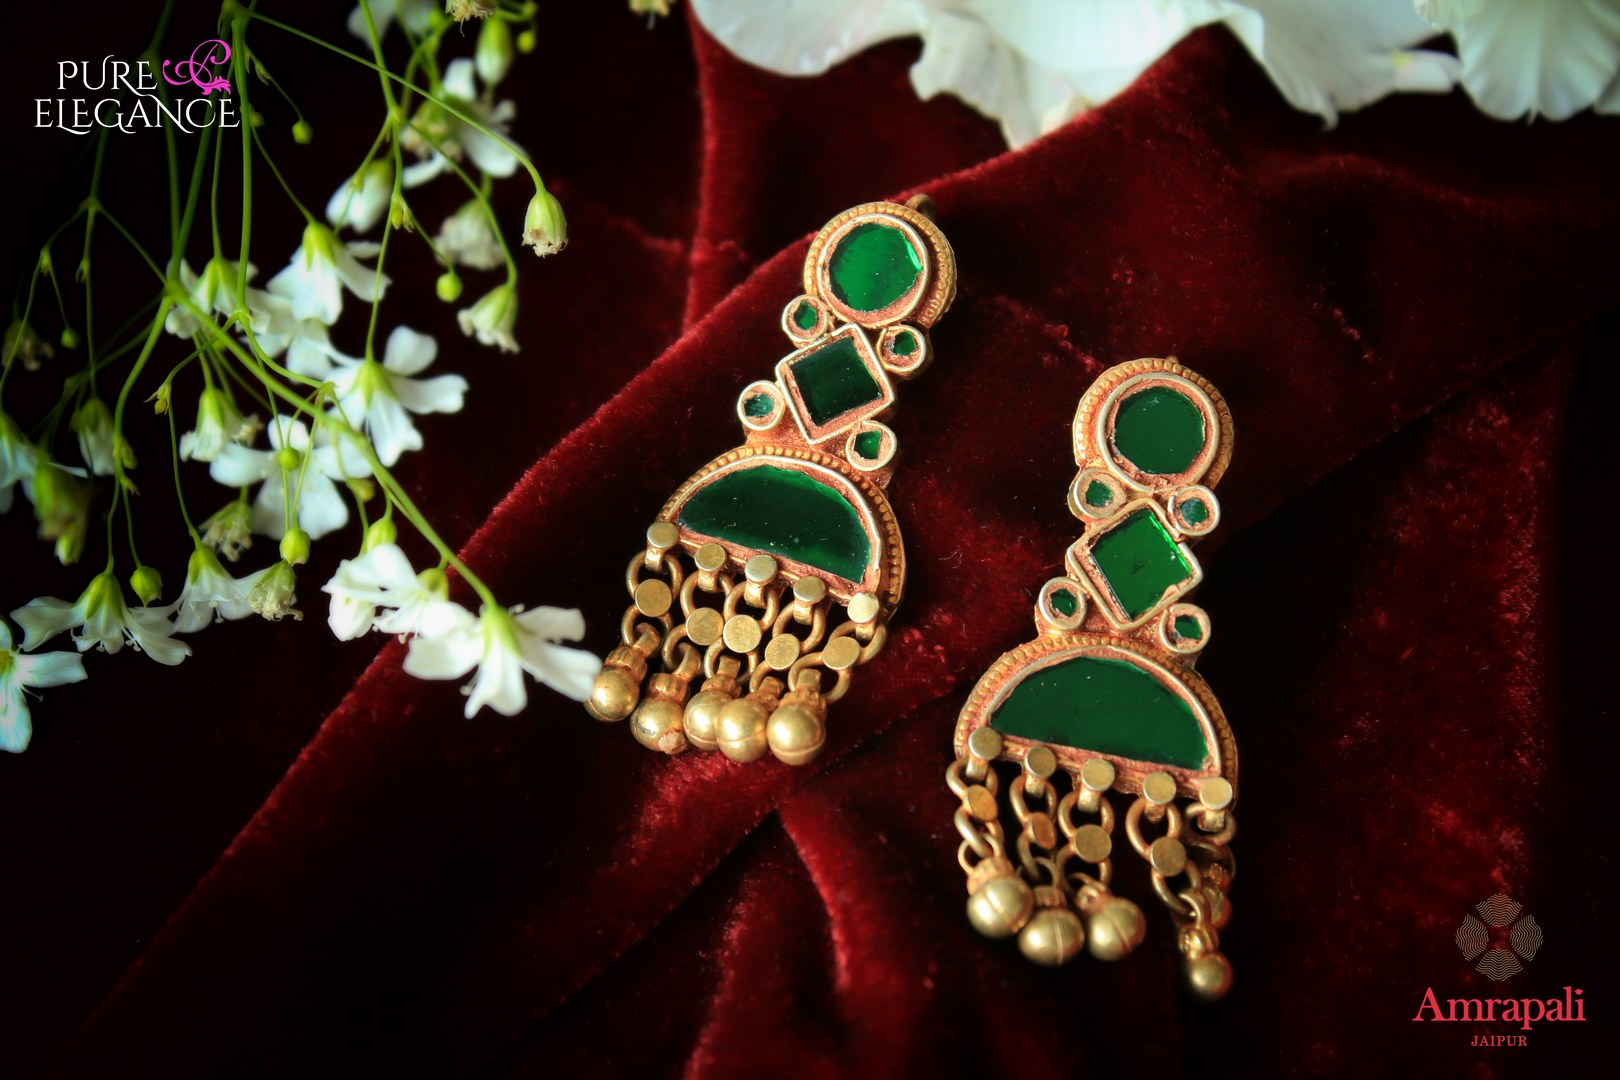 Buy beautiful silver gold plated green glass earrings online in USA from Amrapali. If you are looking for Indian jewellery in USA, then Pure Elegance Indian fashion store is the place for you. A whole range of exquisite silver gold plated earrings, necklaces are waiting for you on our shelves, you can also opt to shop online.-flat lay